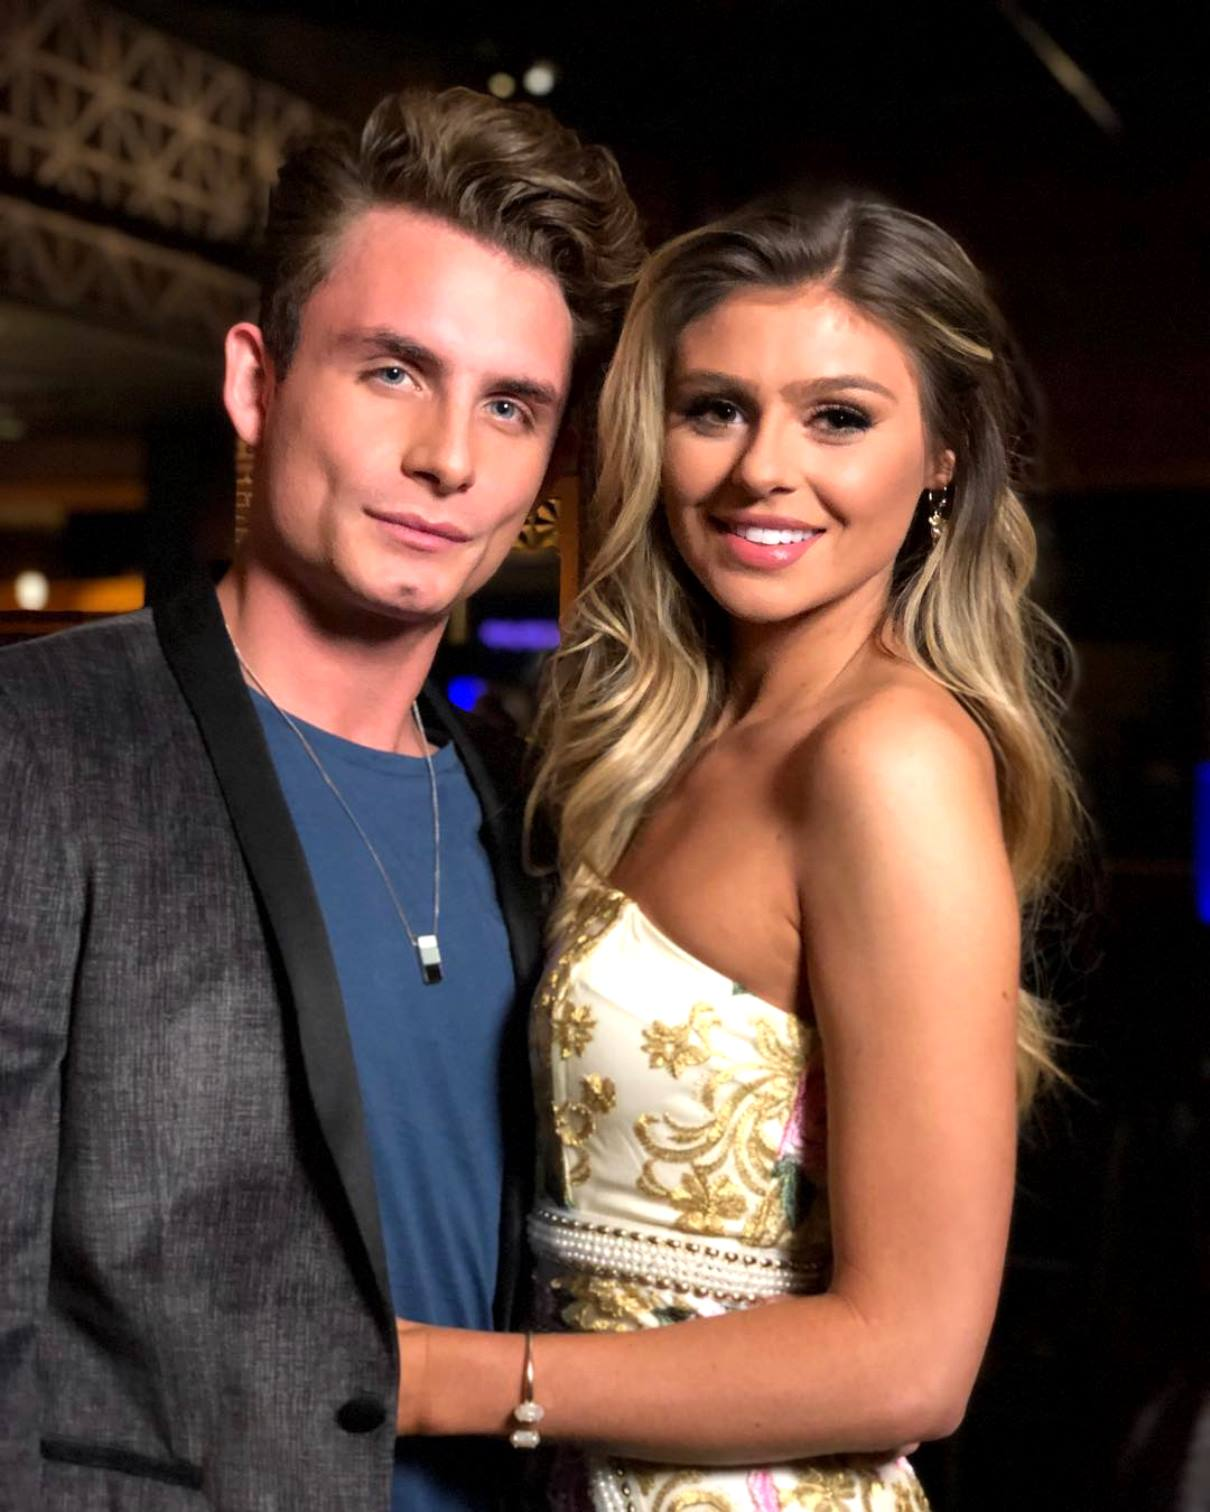 Why Vanderpump Rules' Raquel Leviss Won't Dump James Kennedy